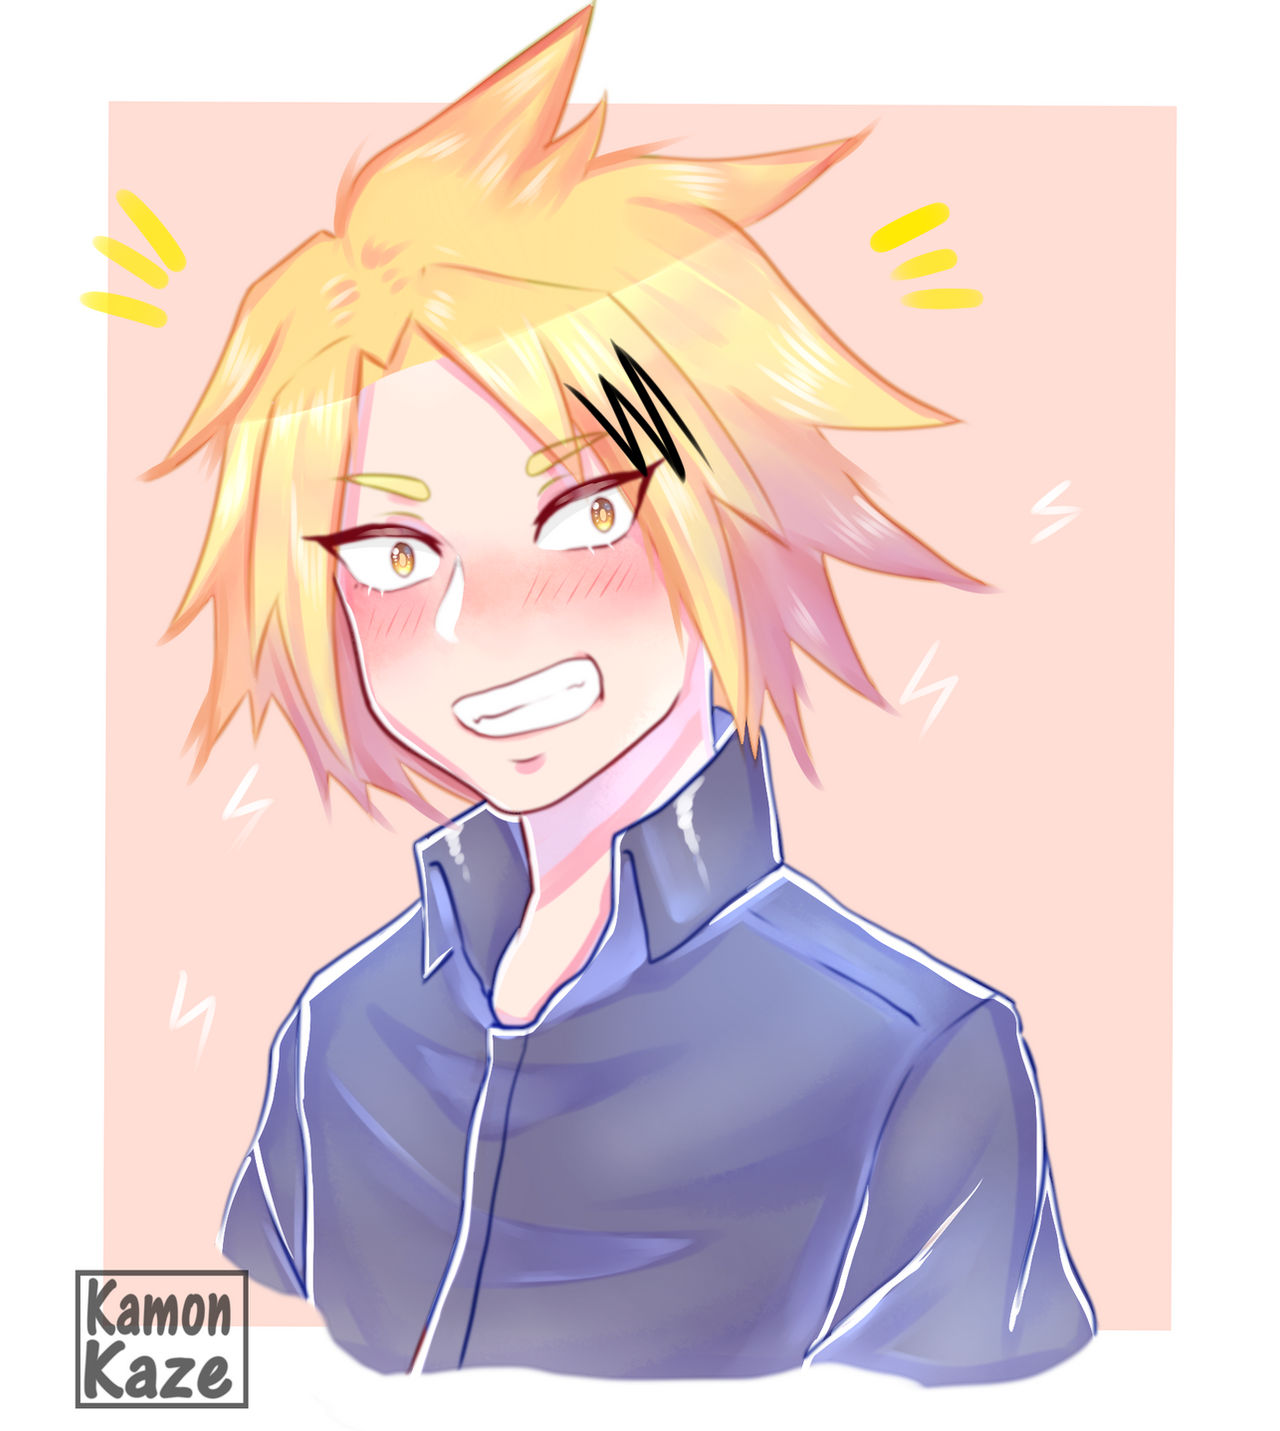 Denki Kaminari Headshot By Kamonkaze On Deviantart